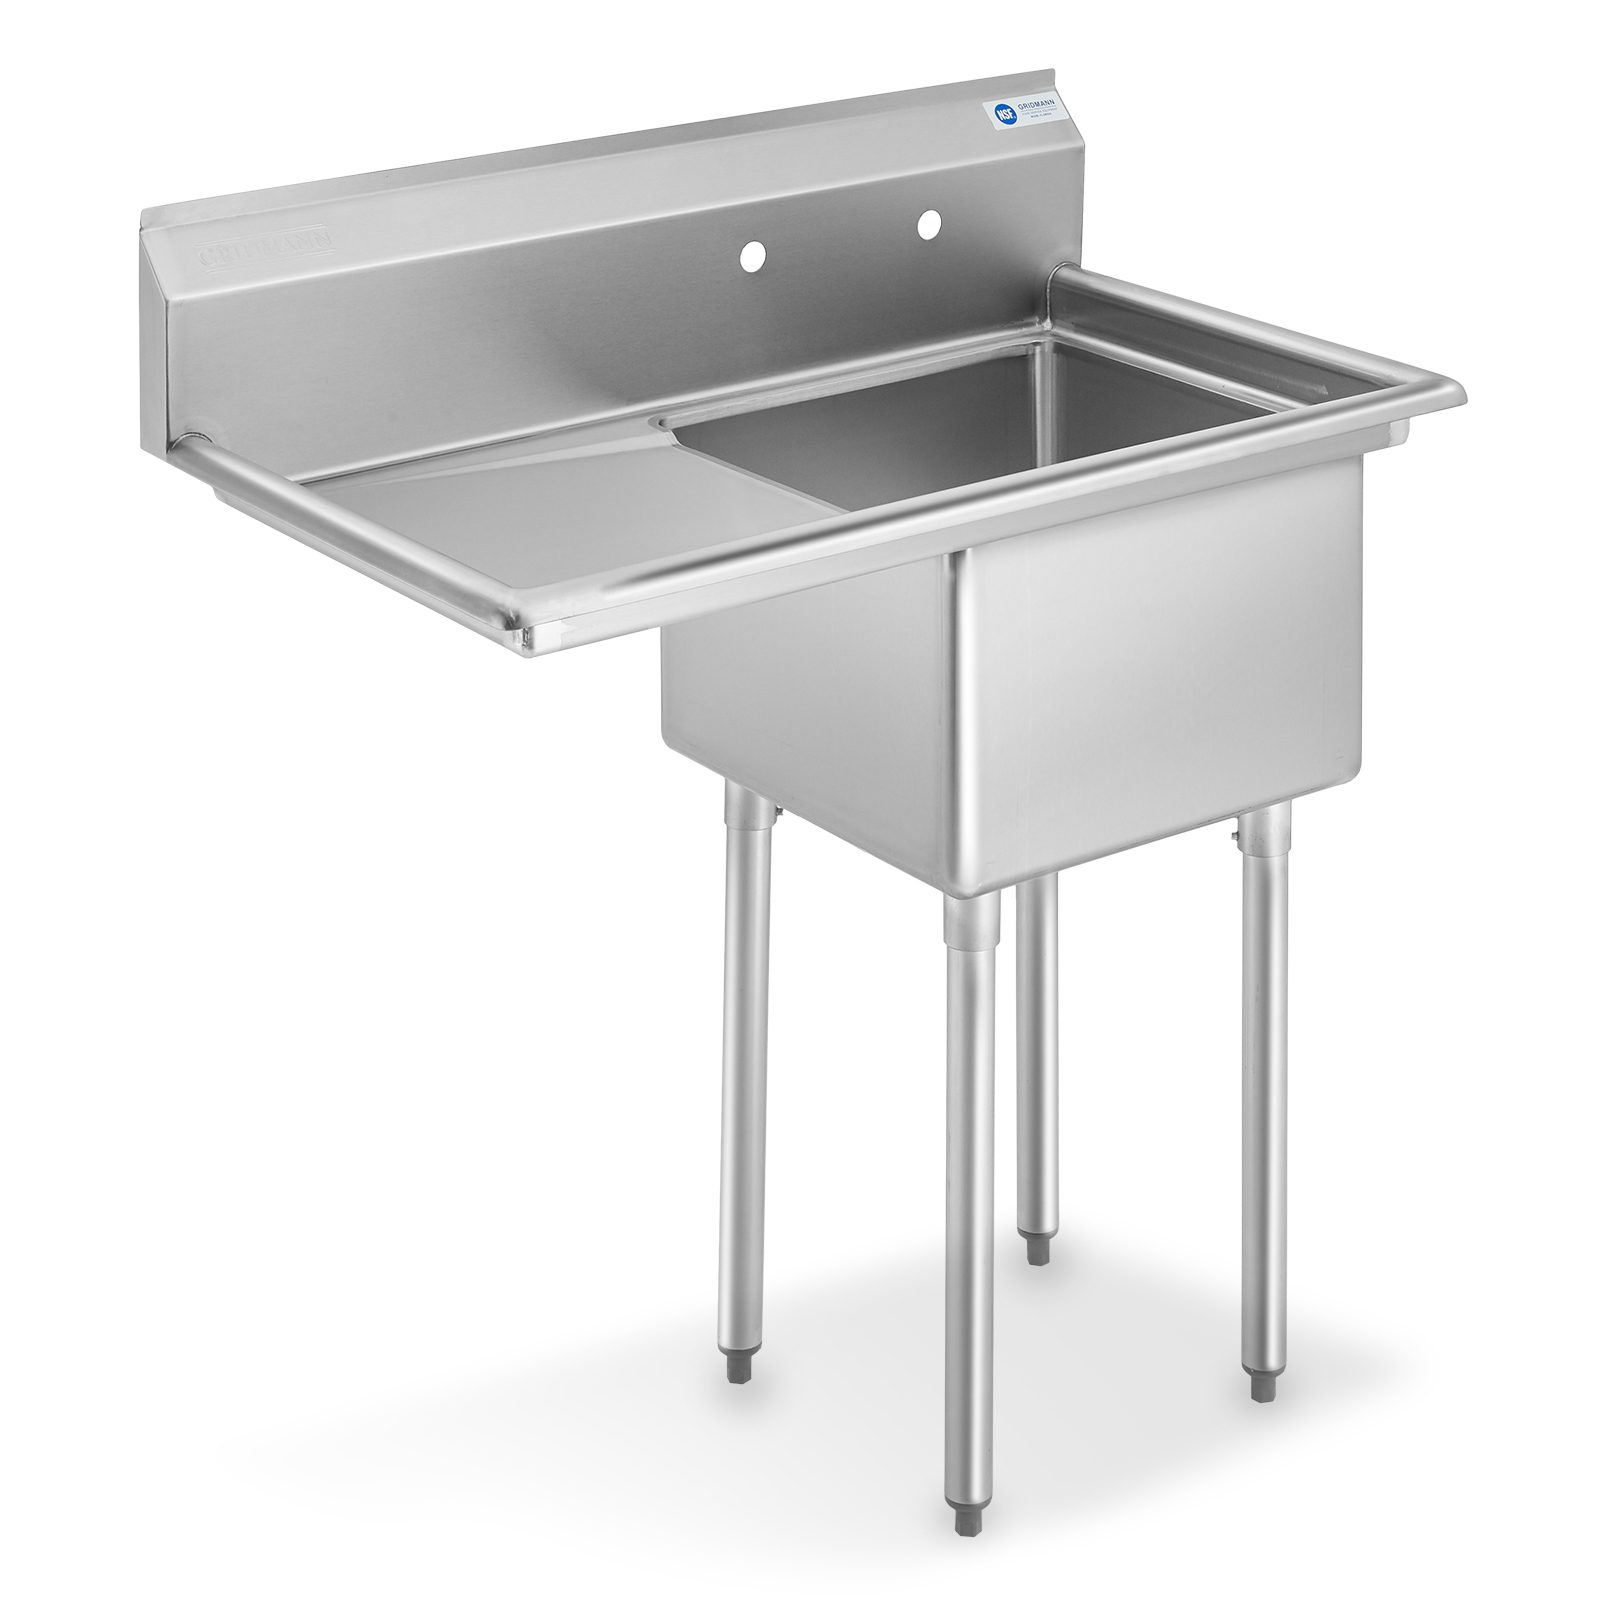 gridmann nsf stainless steel 18 single bowl commercial kitchen sink with left drainboard 12 in deep walmart com